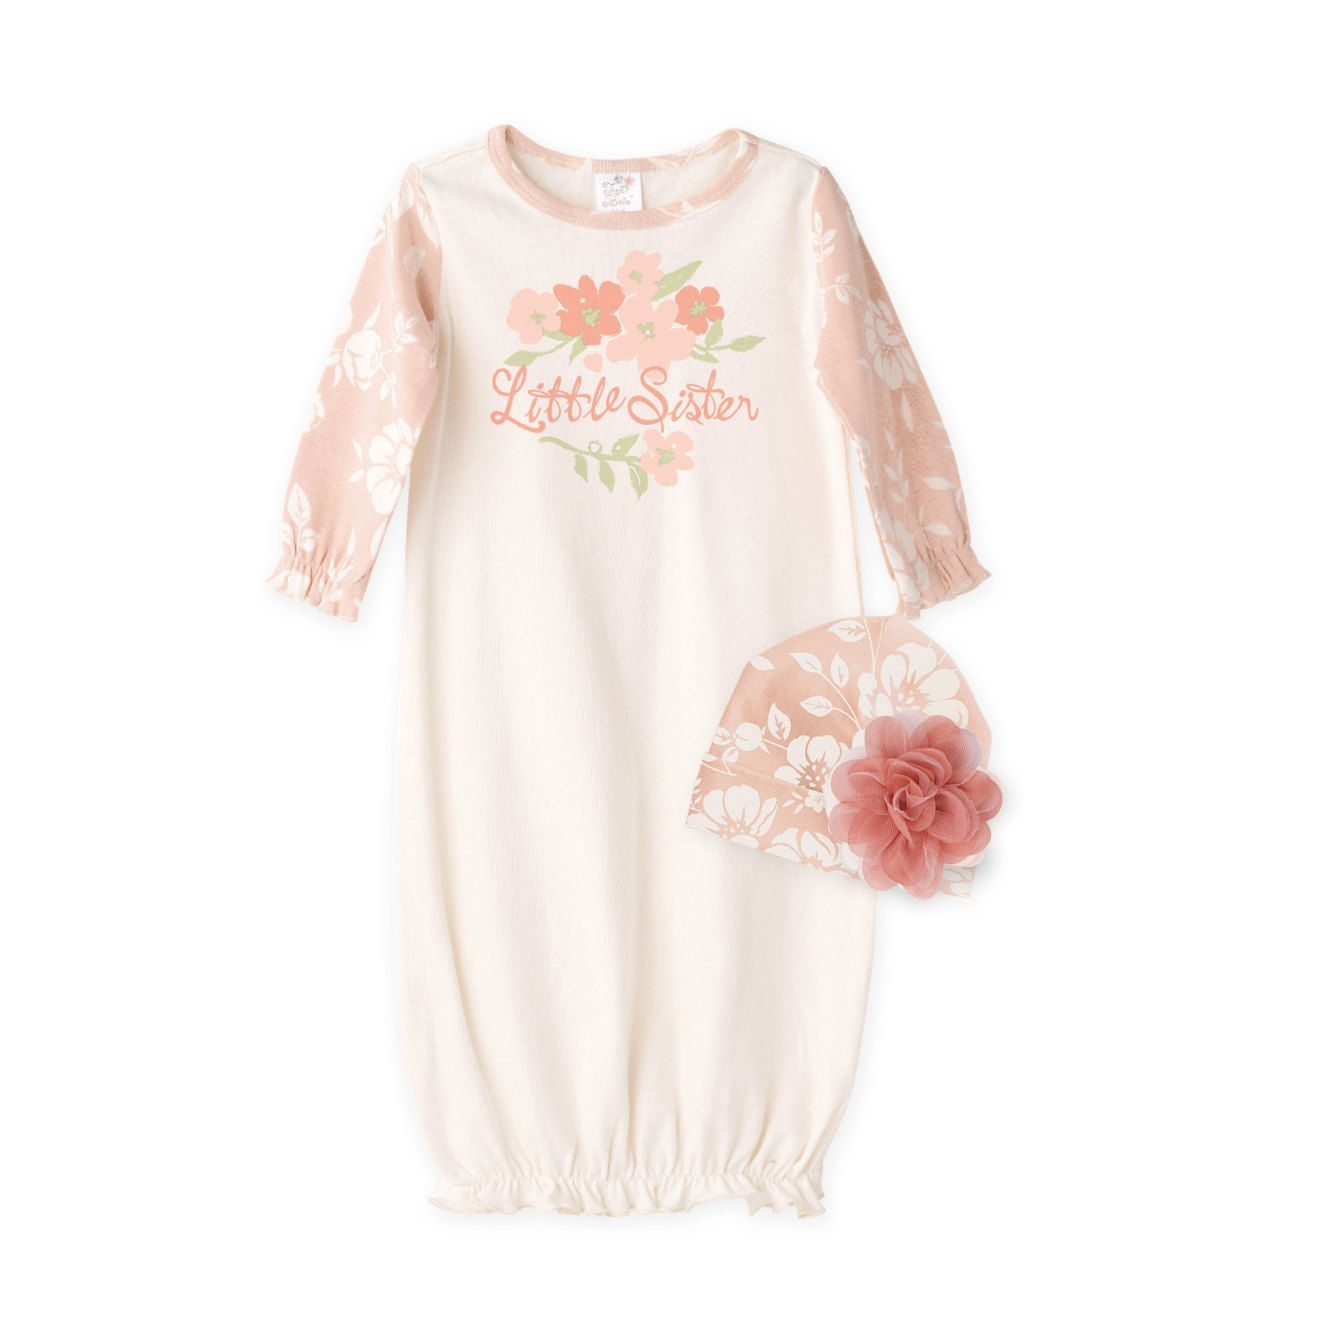 Newborn Girl Take Home Outfit, Baby Gown, TesaBabe by TesaBabe on Etsy https://www.etsy.com/listing/479080173/newborn-girl-take-home-outfit-baby-gown